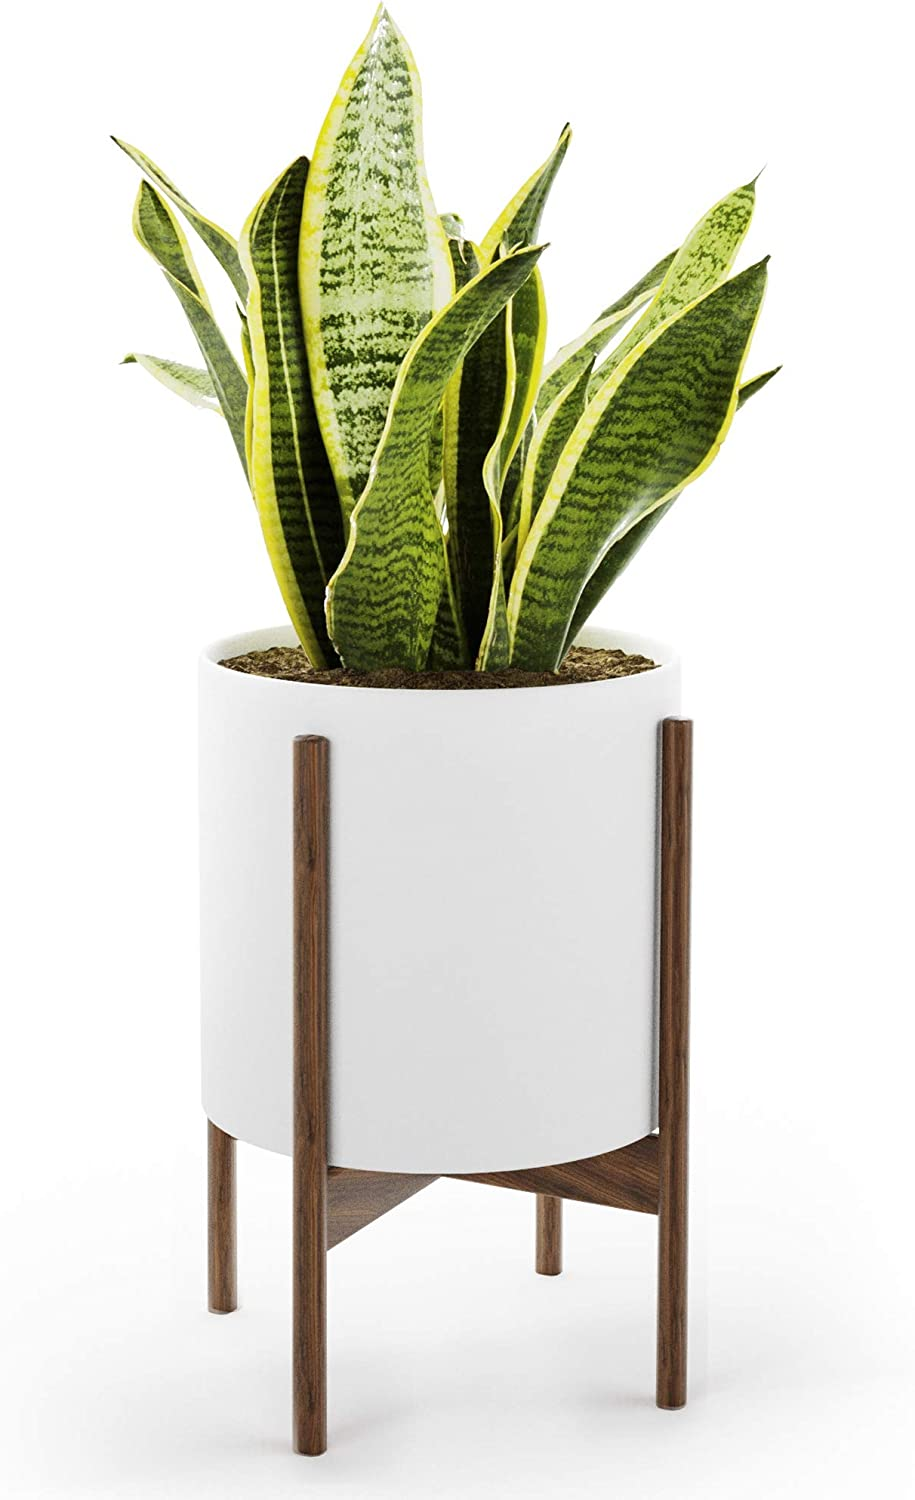 Mid Century Plant Stand with Pot with Drainage - Matte White Ceramic Planter with Wood Plant Stand Made of Walnut - 10 inch Planter - Perfect Pot for Plants Indoor - Planter with Stand NOT Adjustable